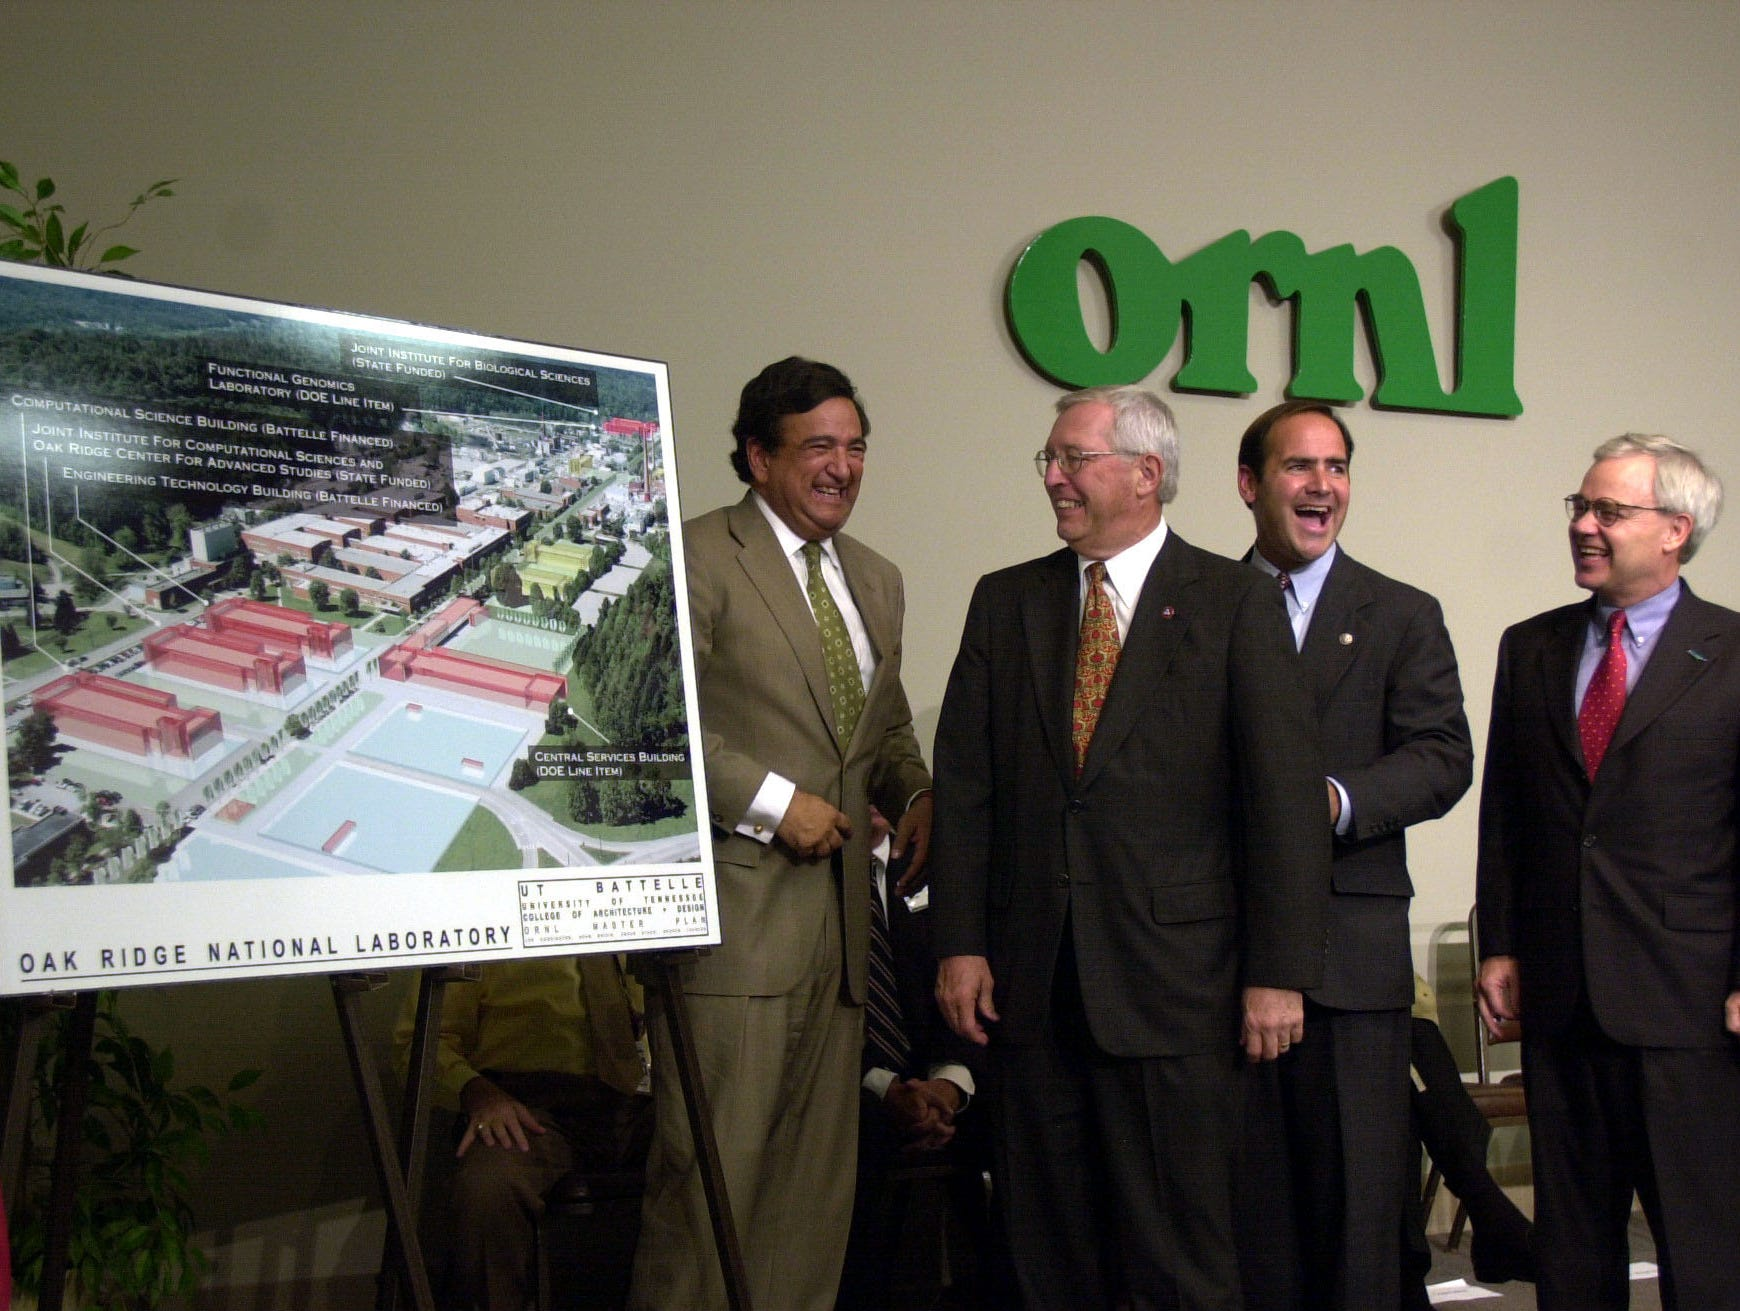 Secretary of Energy Bill Richardson, left, Tennessee Gov. Don Sundquist, U.S. Rep. Zach Wamp, and U.S. Rep. Bob Clement unveil a five-year plan on Monday, Sept. 11, 2000, which will modernize facilities at Oak Ridge National Laboratory.  (Amy Smotherman/News-Sentinel)